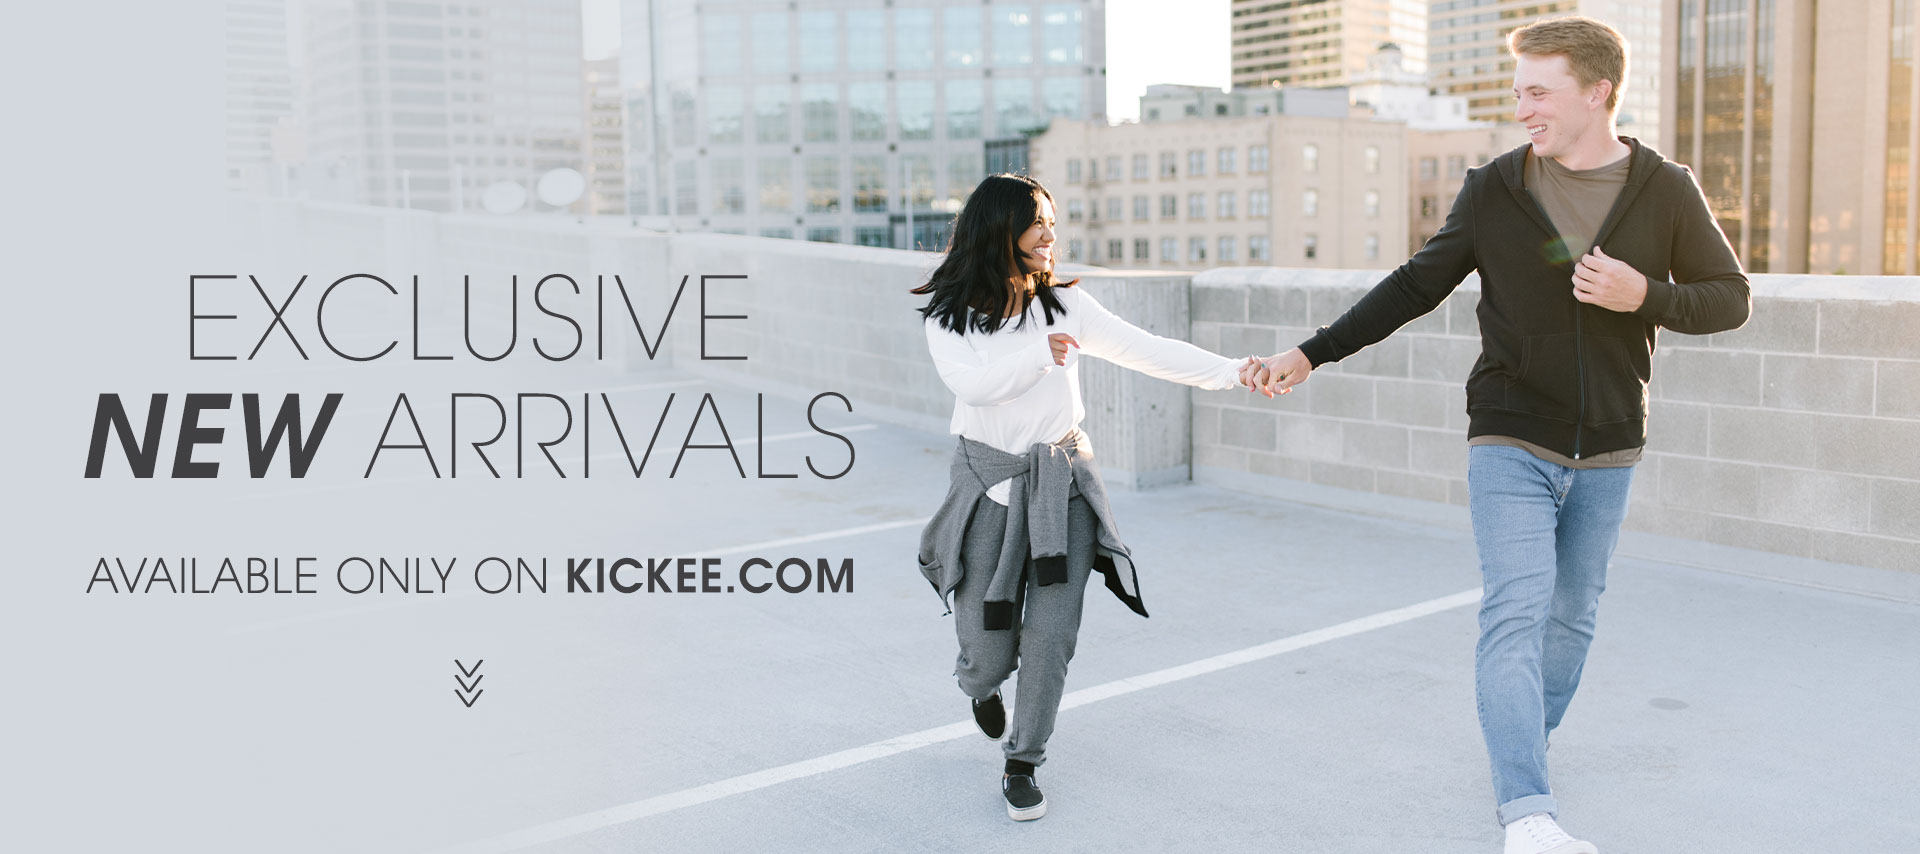 KICKEE EXCLUSIVES